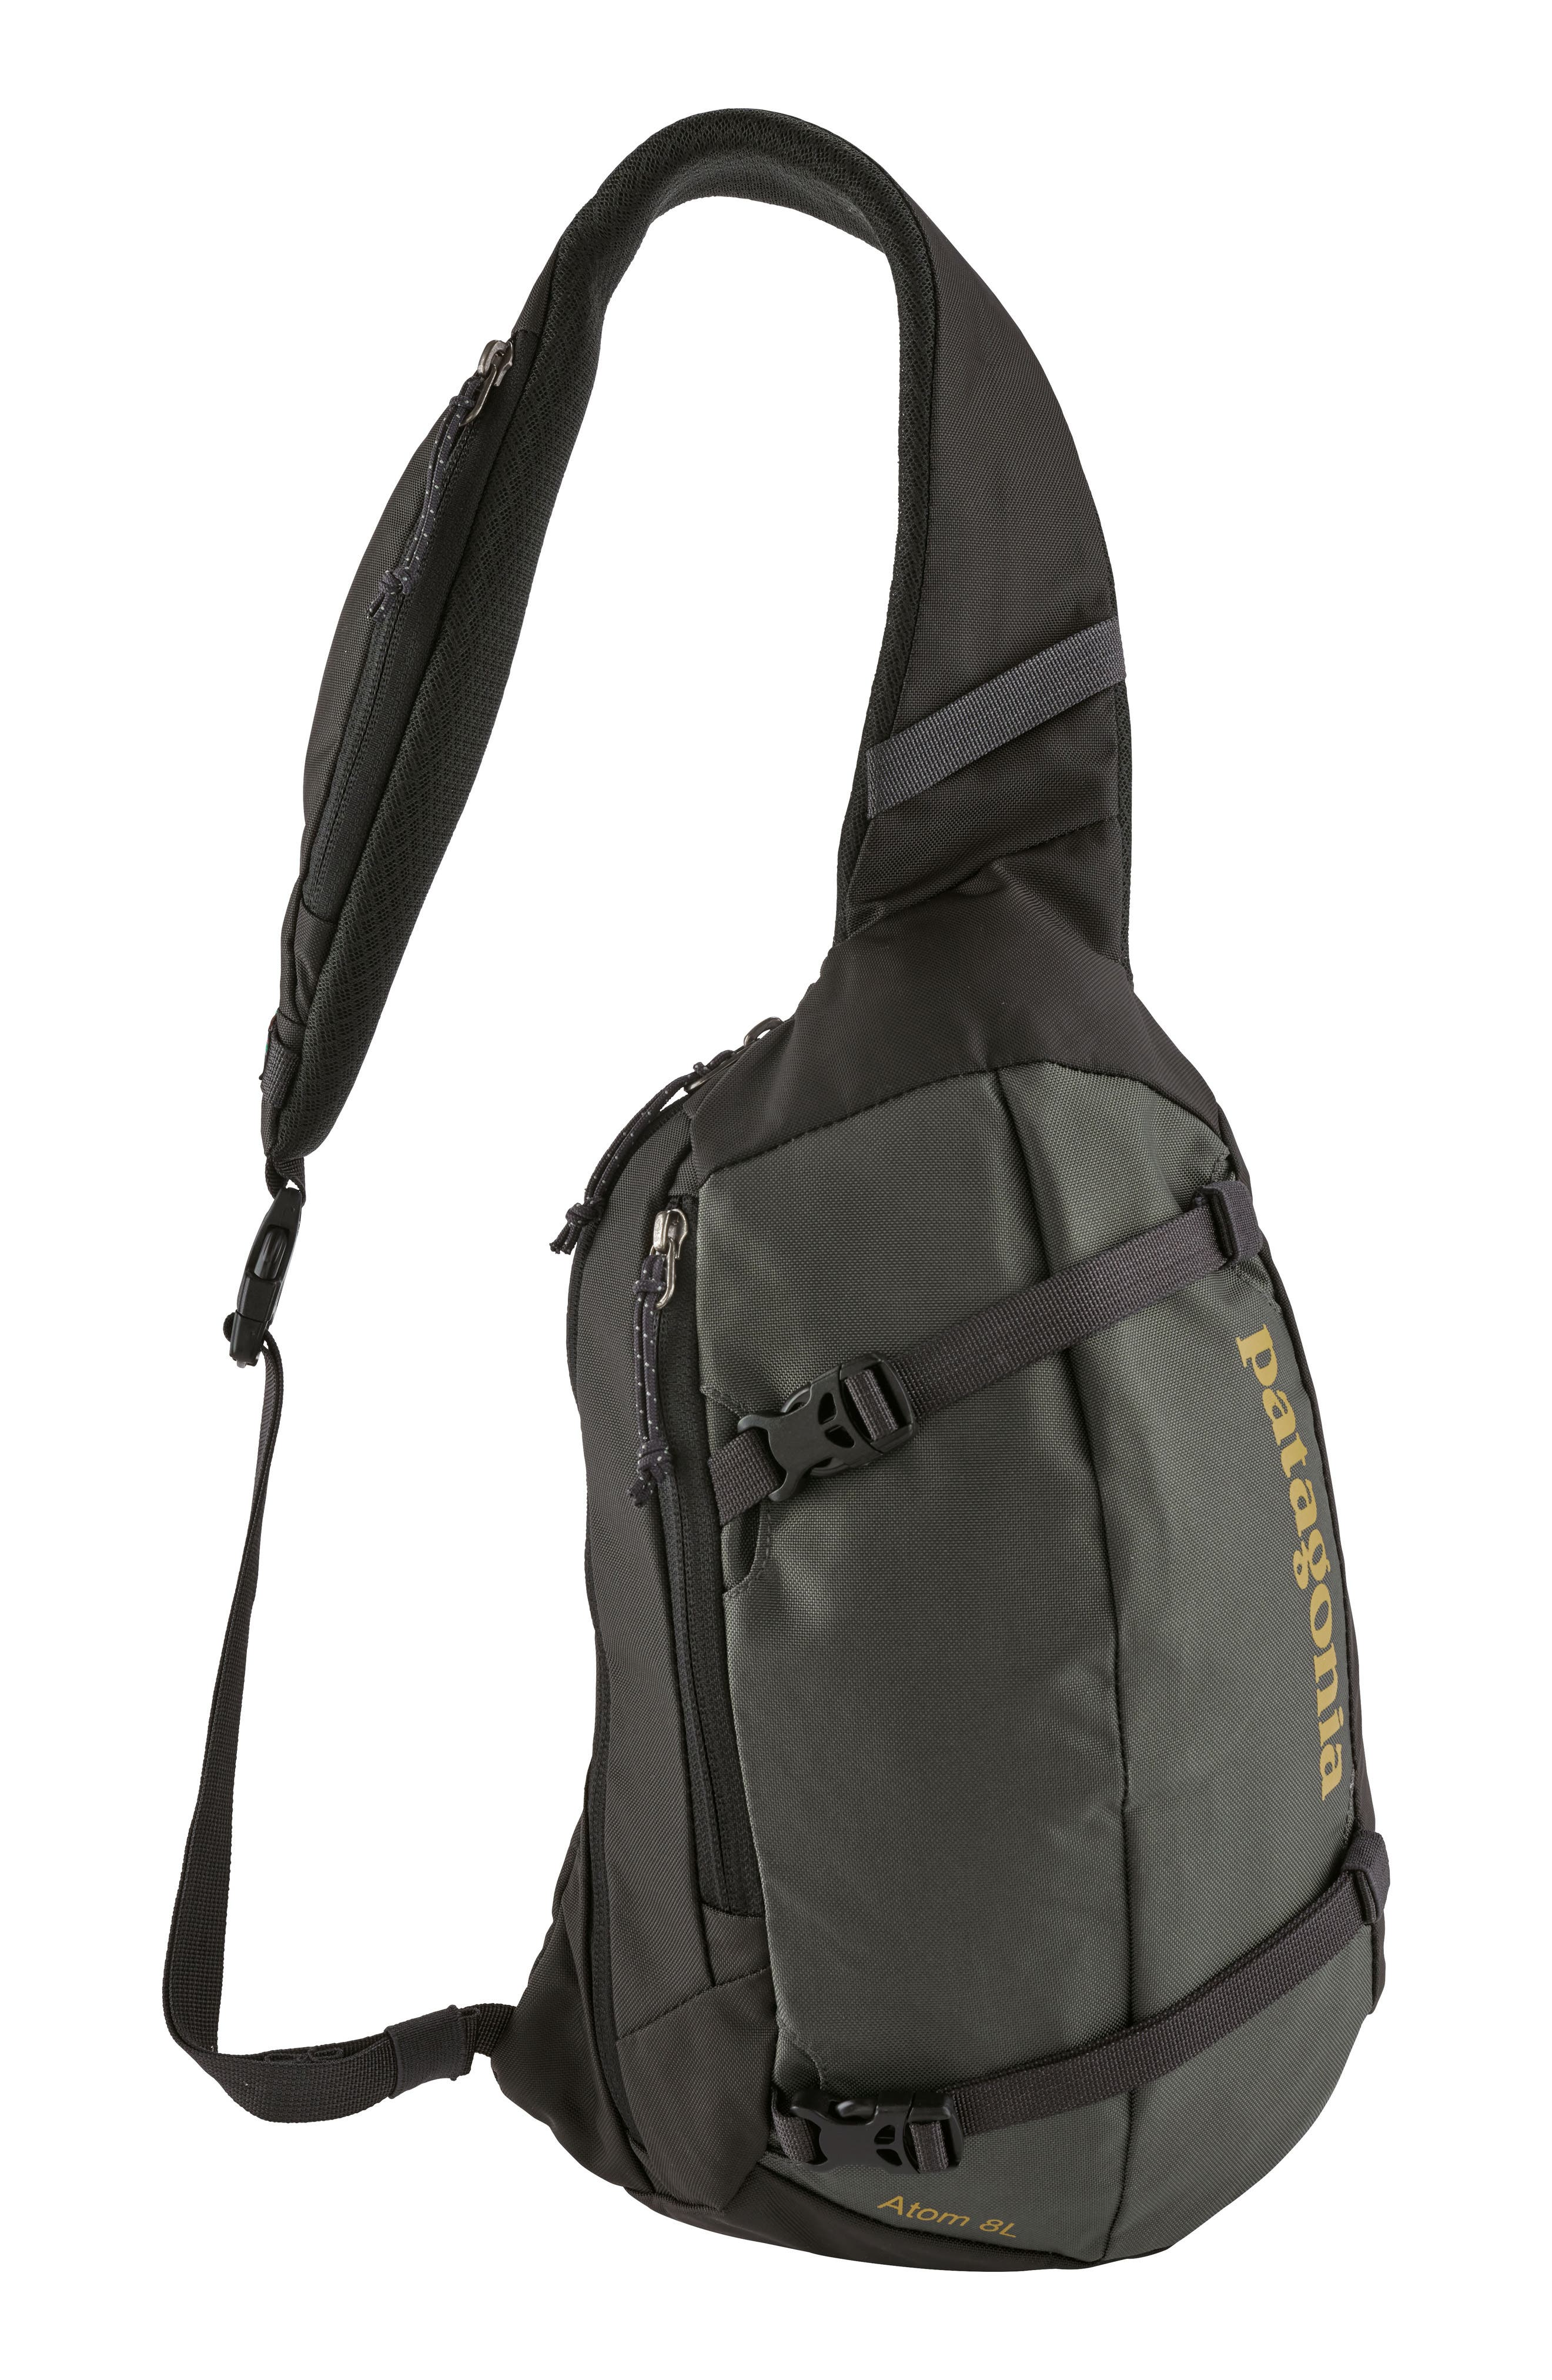 Atom 8L Sling Backpack,                             Main thumbnail 1, color,                             FORT FORGE GREY W/ GREEN